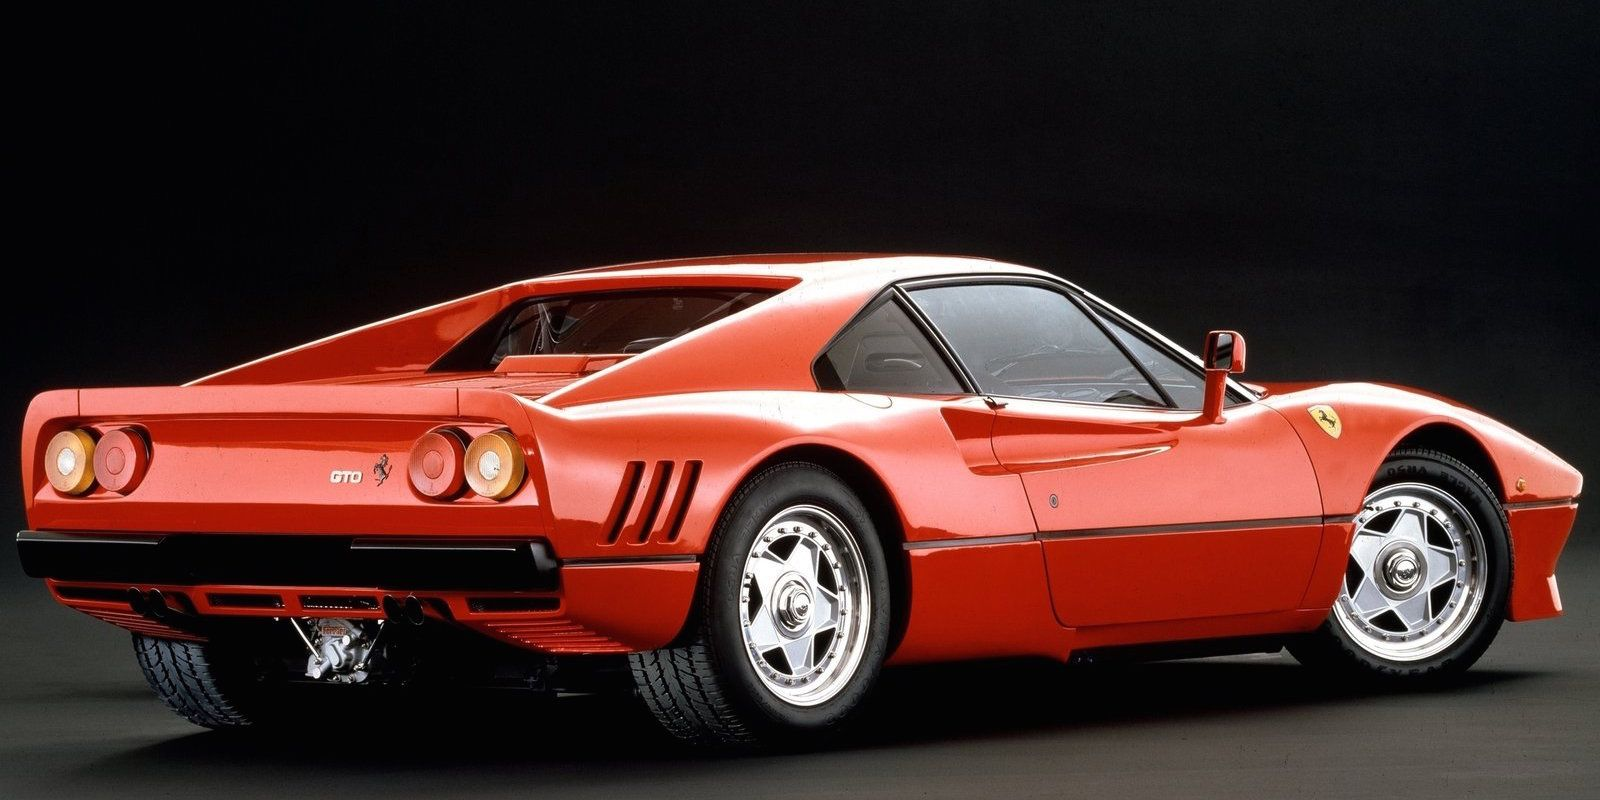 "<p>The <a href=""http://quizcards.info/car-culture/features/a7304/sam-smith-on-ferrari-288-gto/"" target=""_blank"">288 GTO</a> picks up where the 308 leaves off. Ferrari wanted to enter this car in Group B rally, but the series was cancelled before the 288 GTO reached a dirt stage. We still got a hell of a road car out of it, though.</p>"